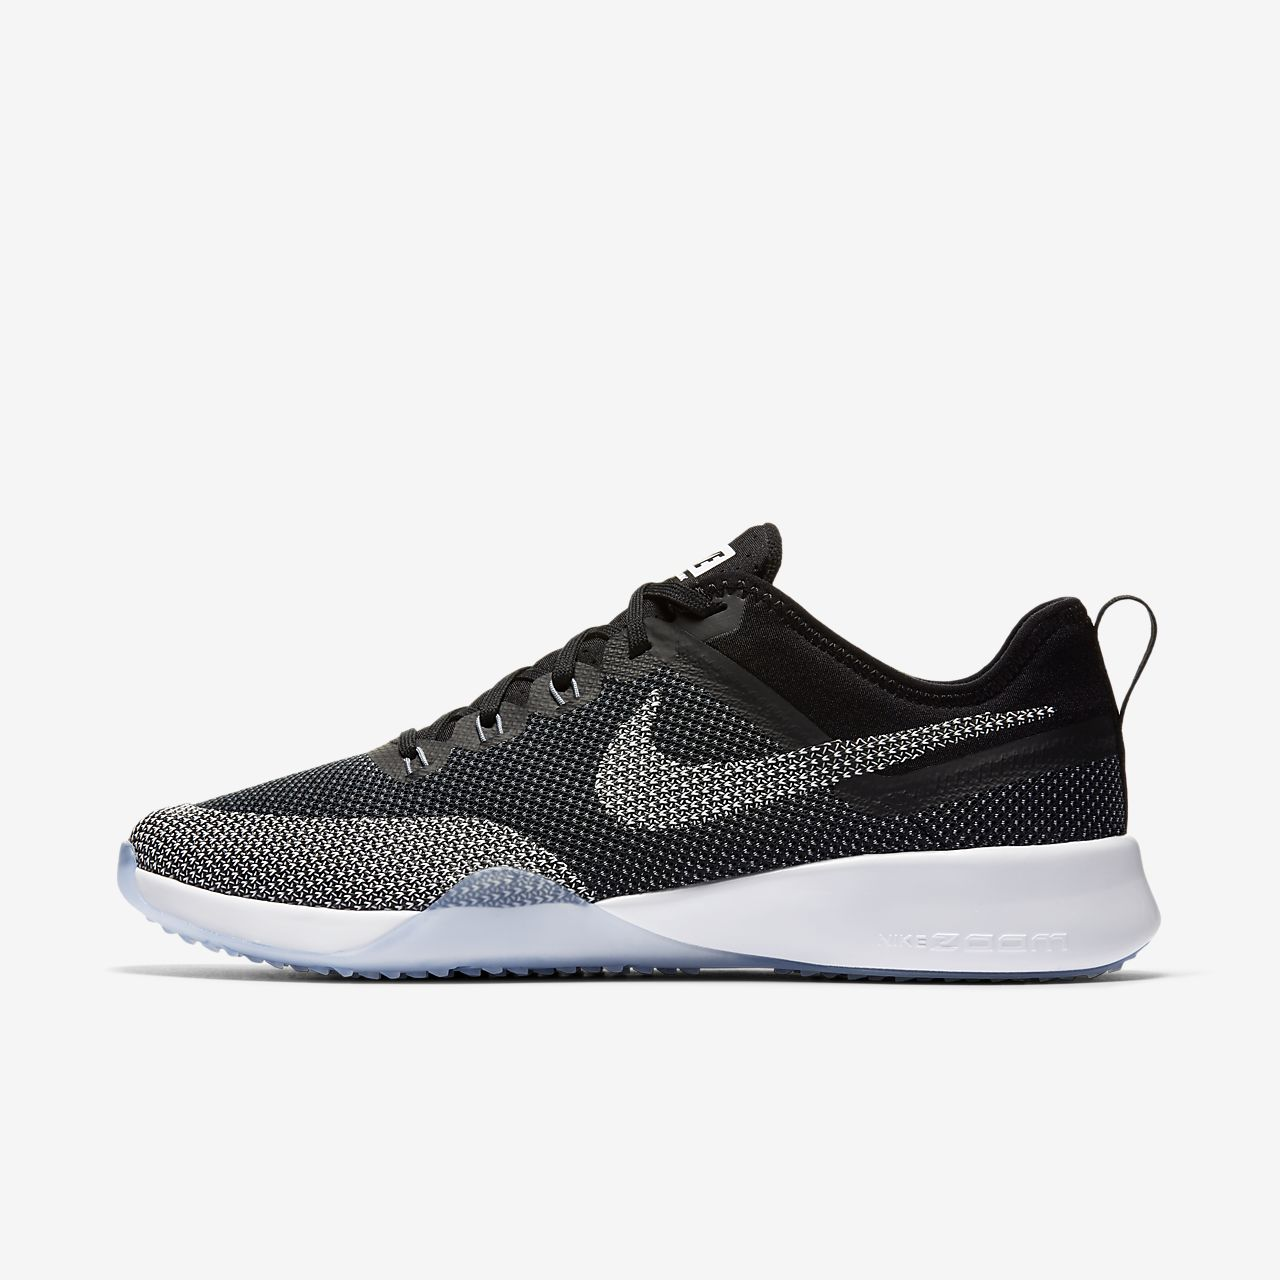 New Zealand Women's Nike Air Zoom Dynamic TR Trainers - Black